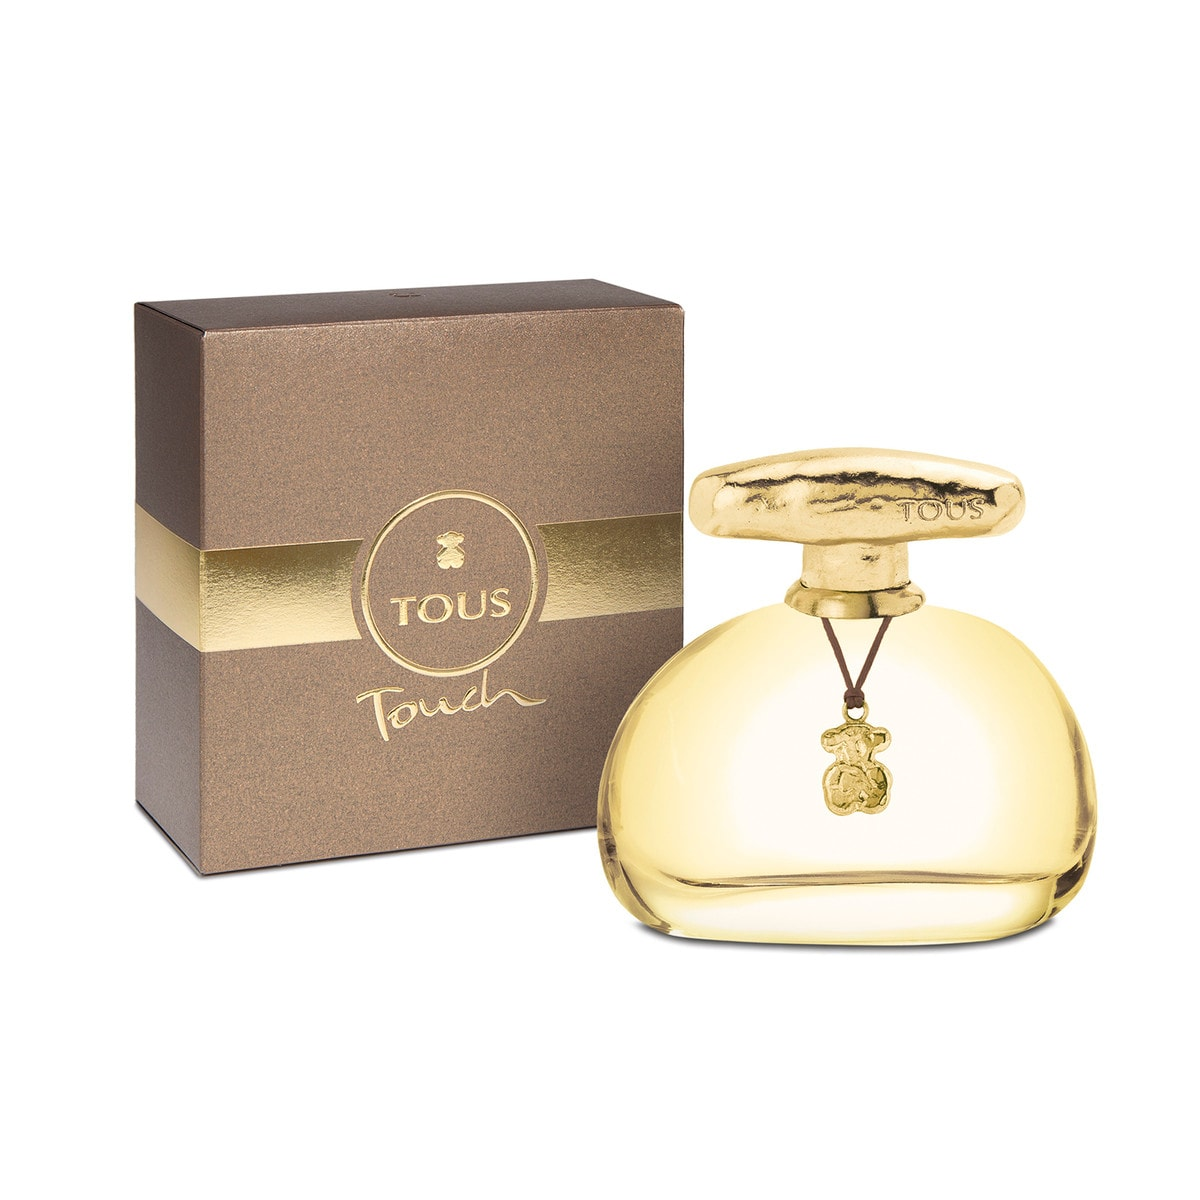 Touch The Original Gold Eau de Toilette - 100 ml